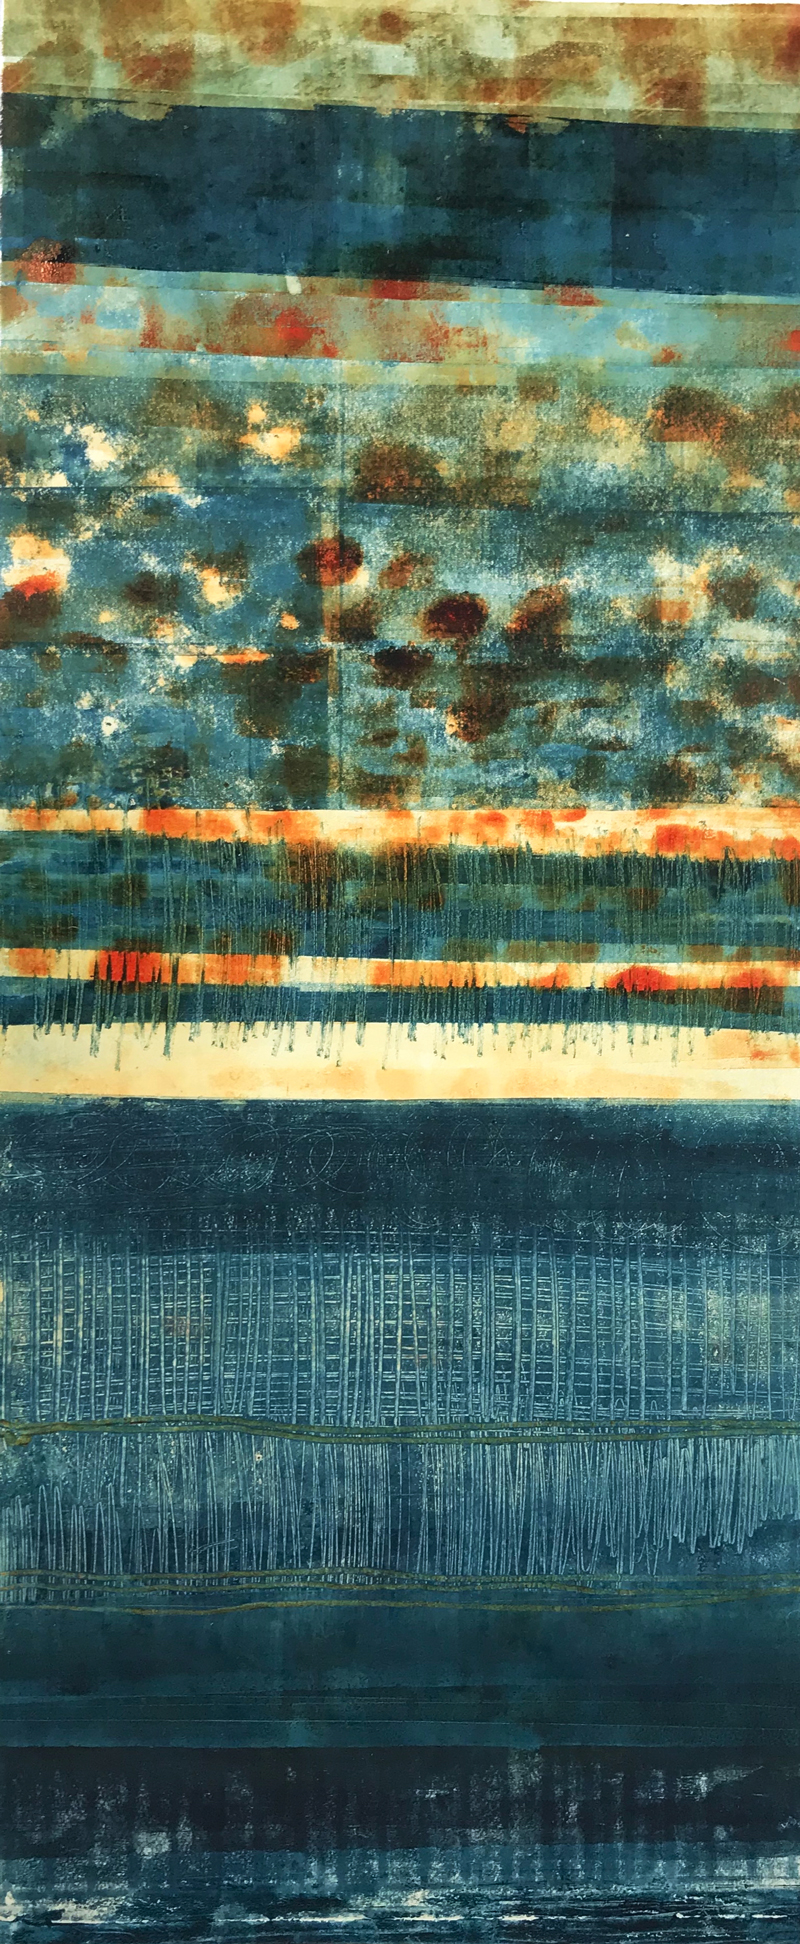 Prussian-Blue-4, monotype by Suzanne Bethell